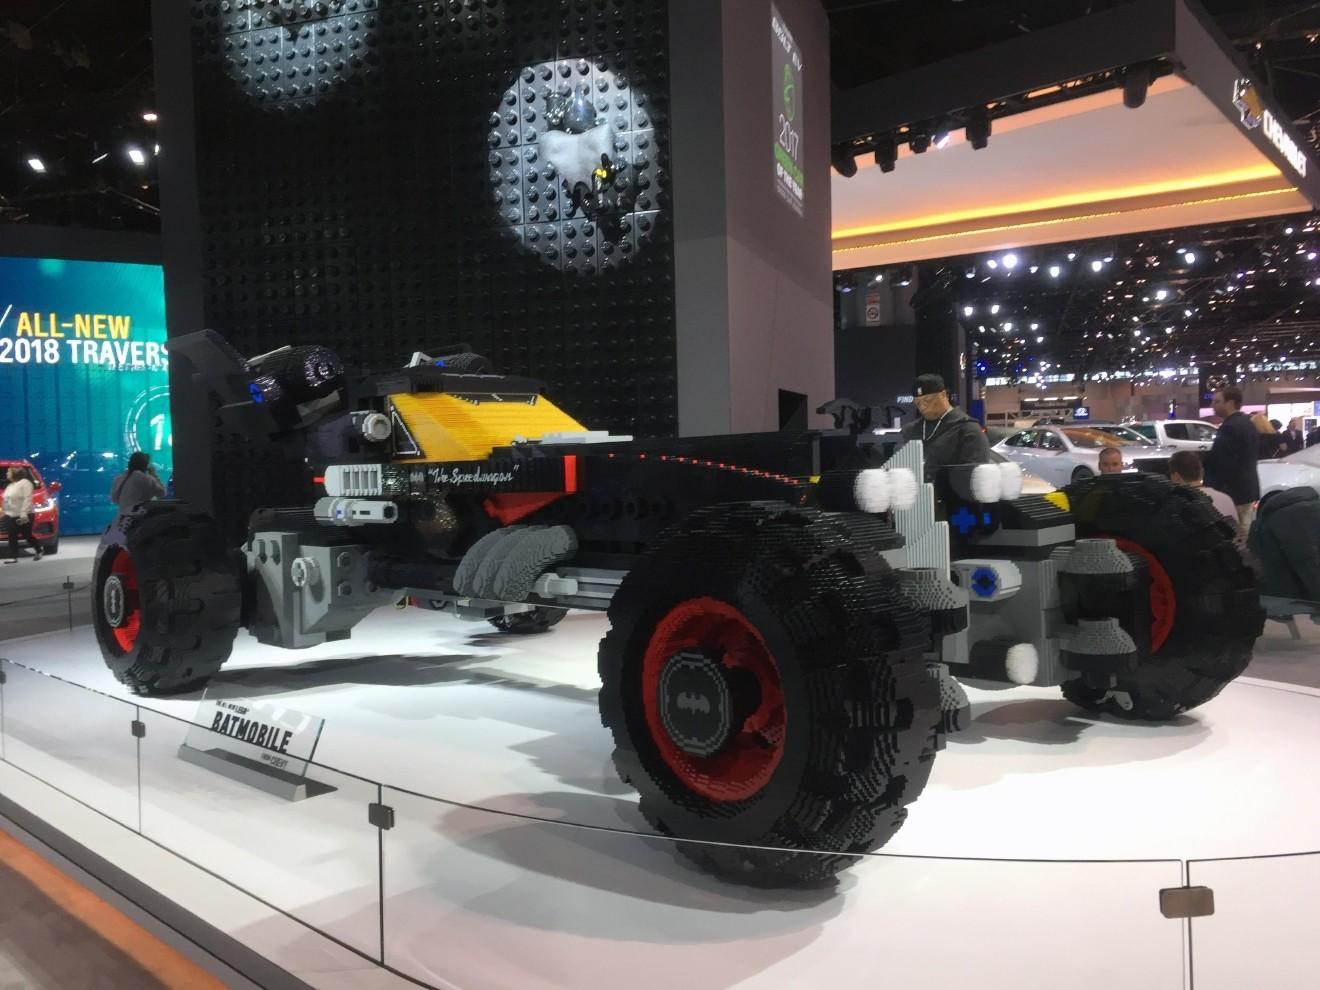 Scenes From The Chicago Auto Show WMYV - Car show chicago 2018